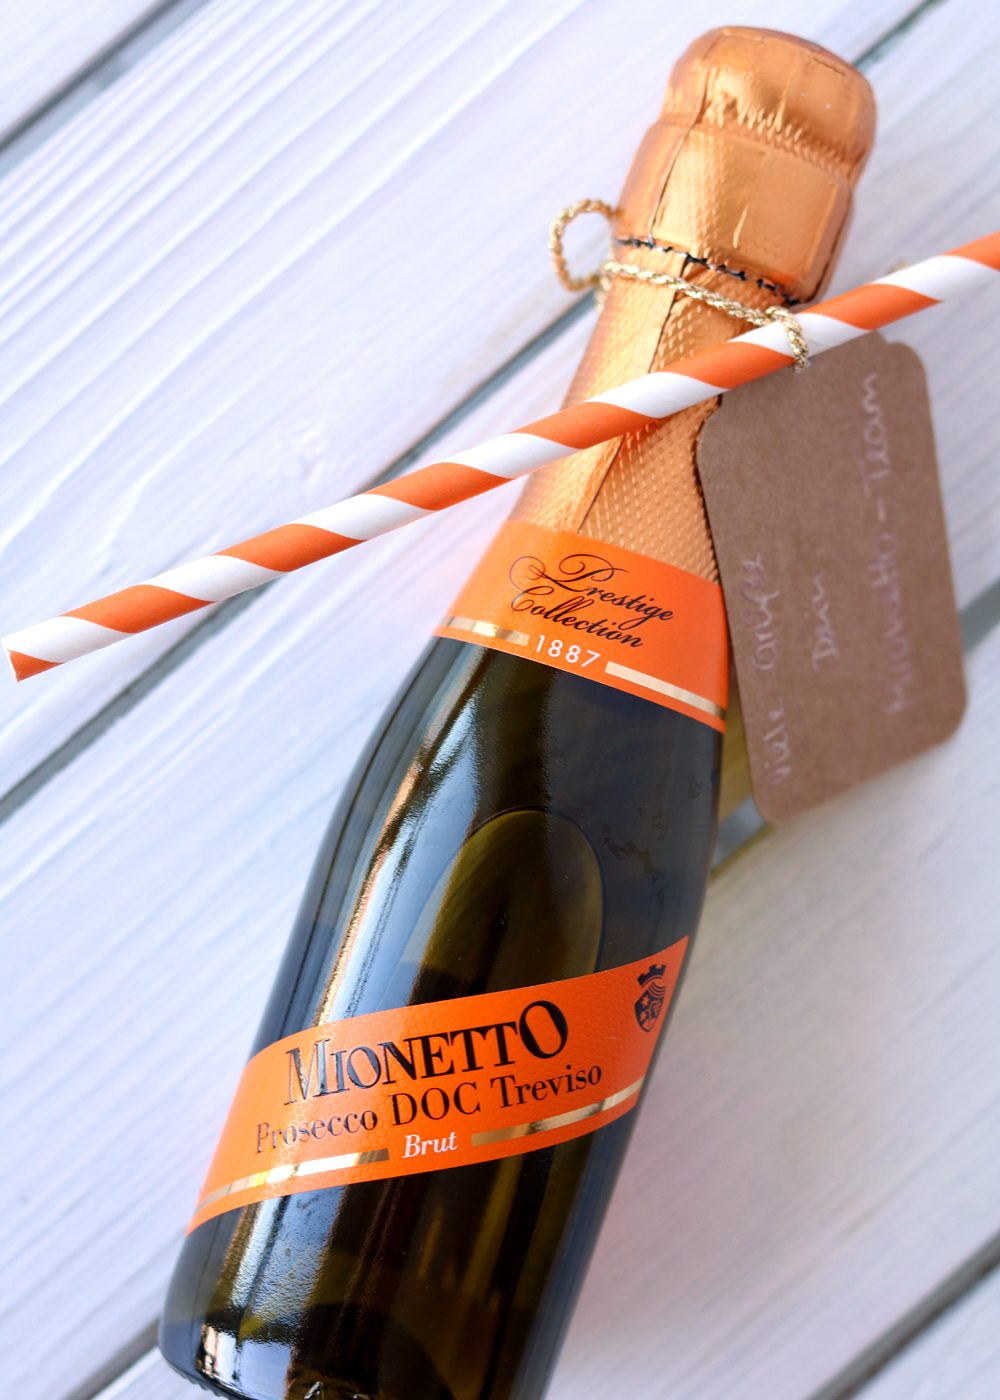 Berlin Fashion Week Blog Box Mionetto Prosecco